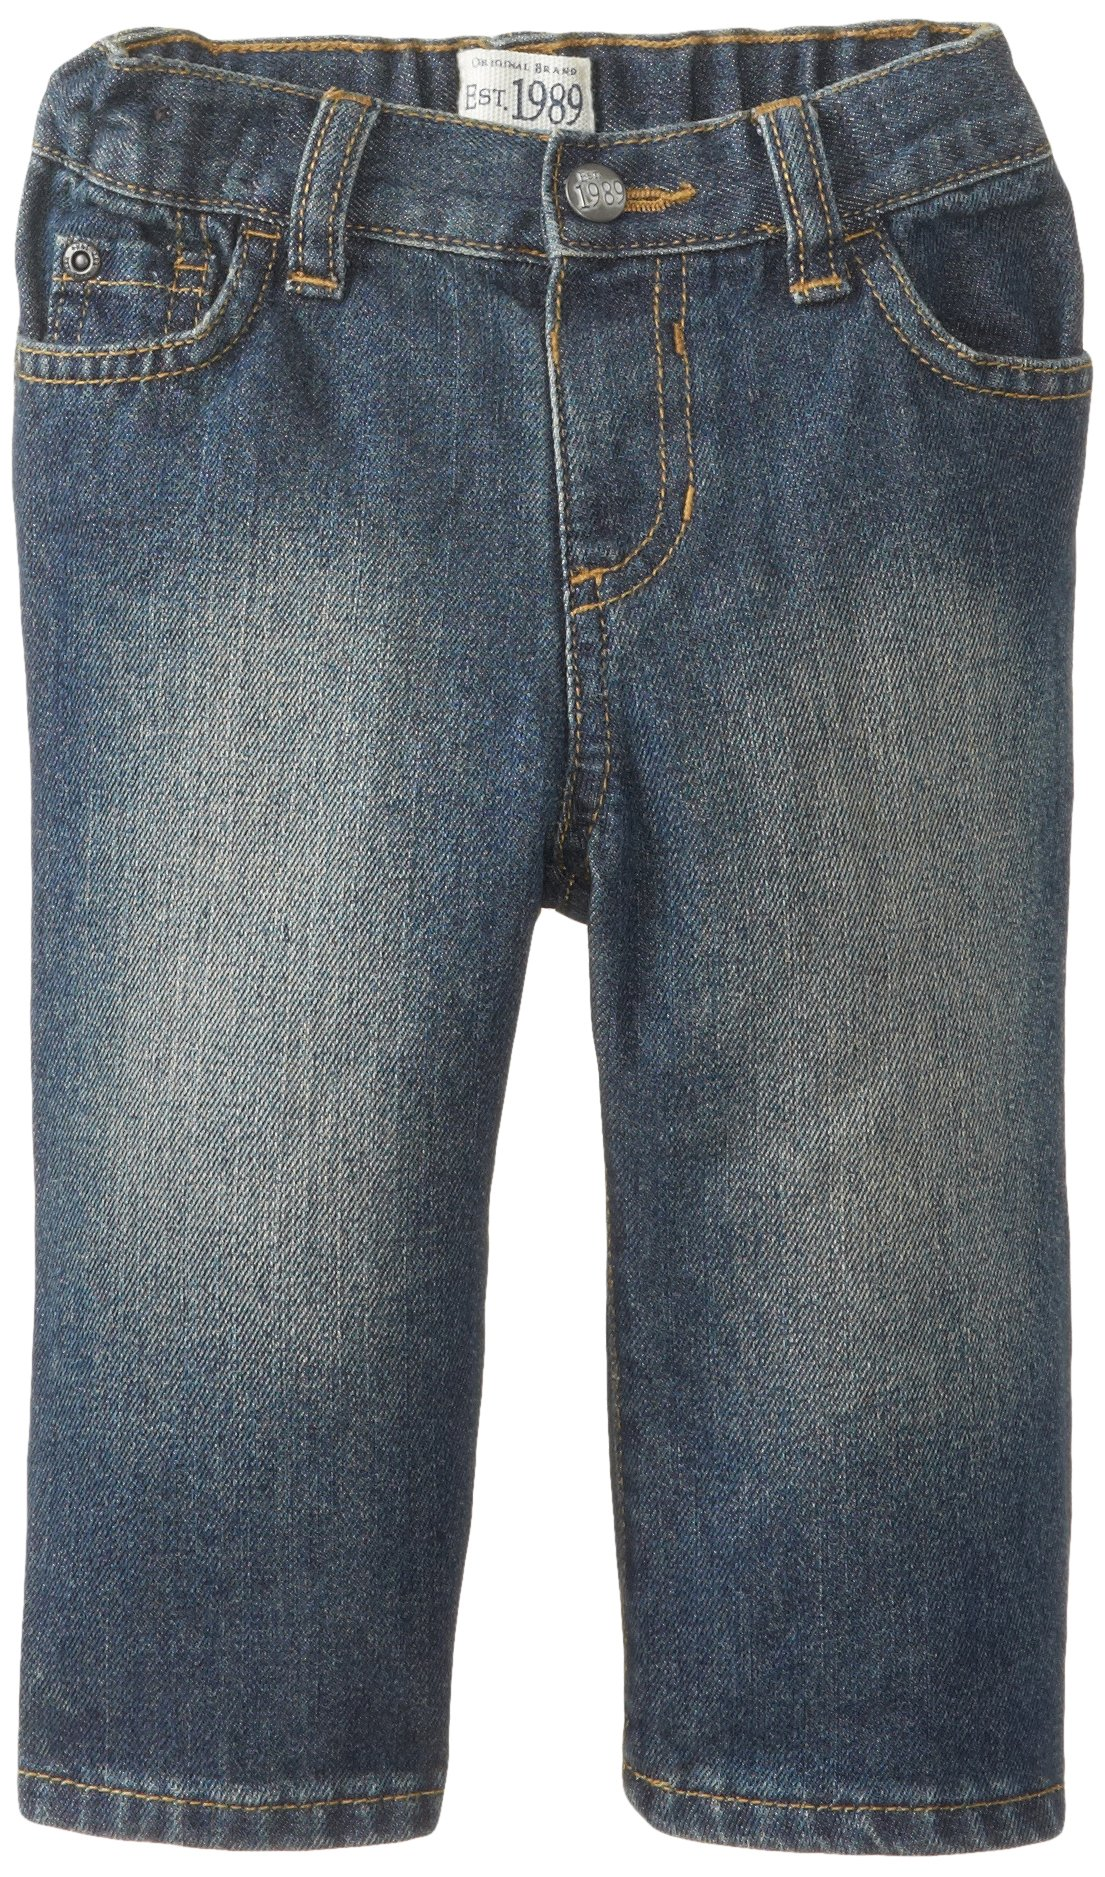 5256ae435494 Best Rated in Baby Boys  Jeans   Helpful Customer Reviews - Amazon.com